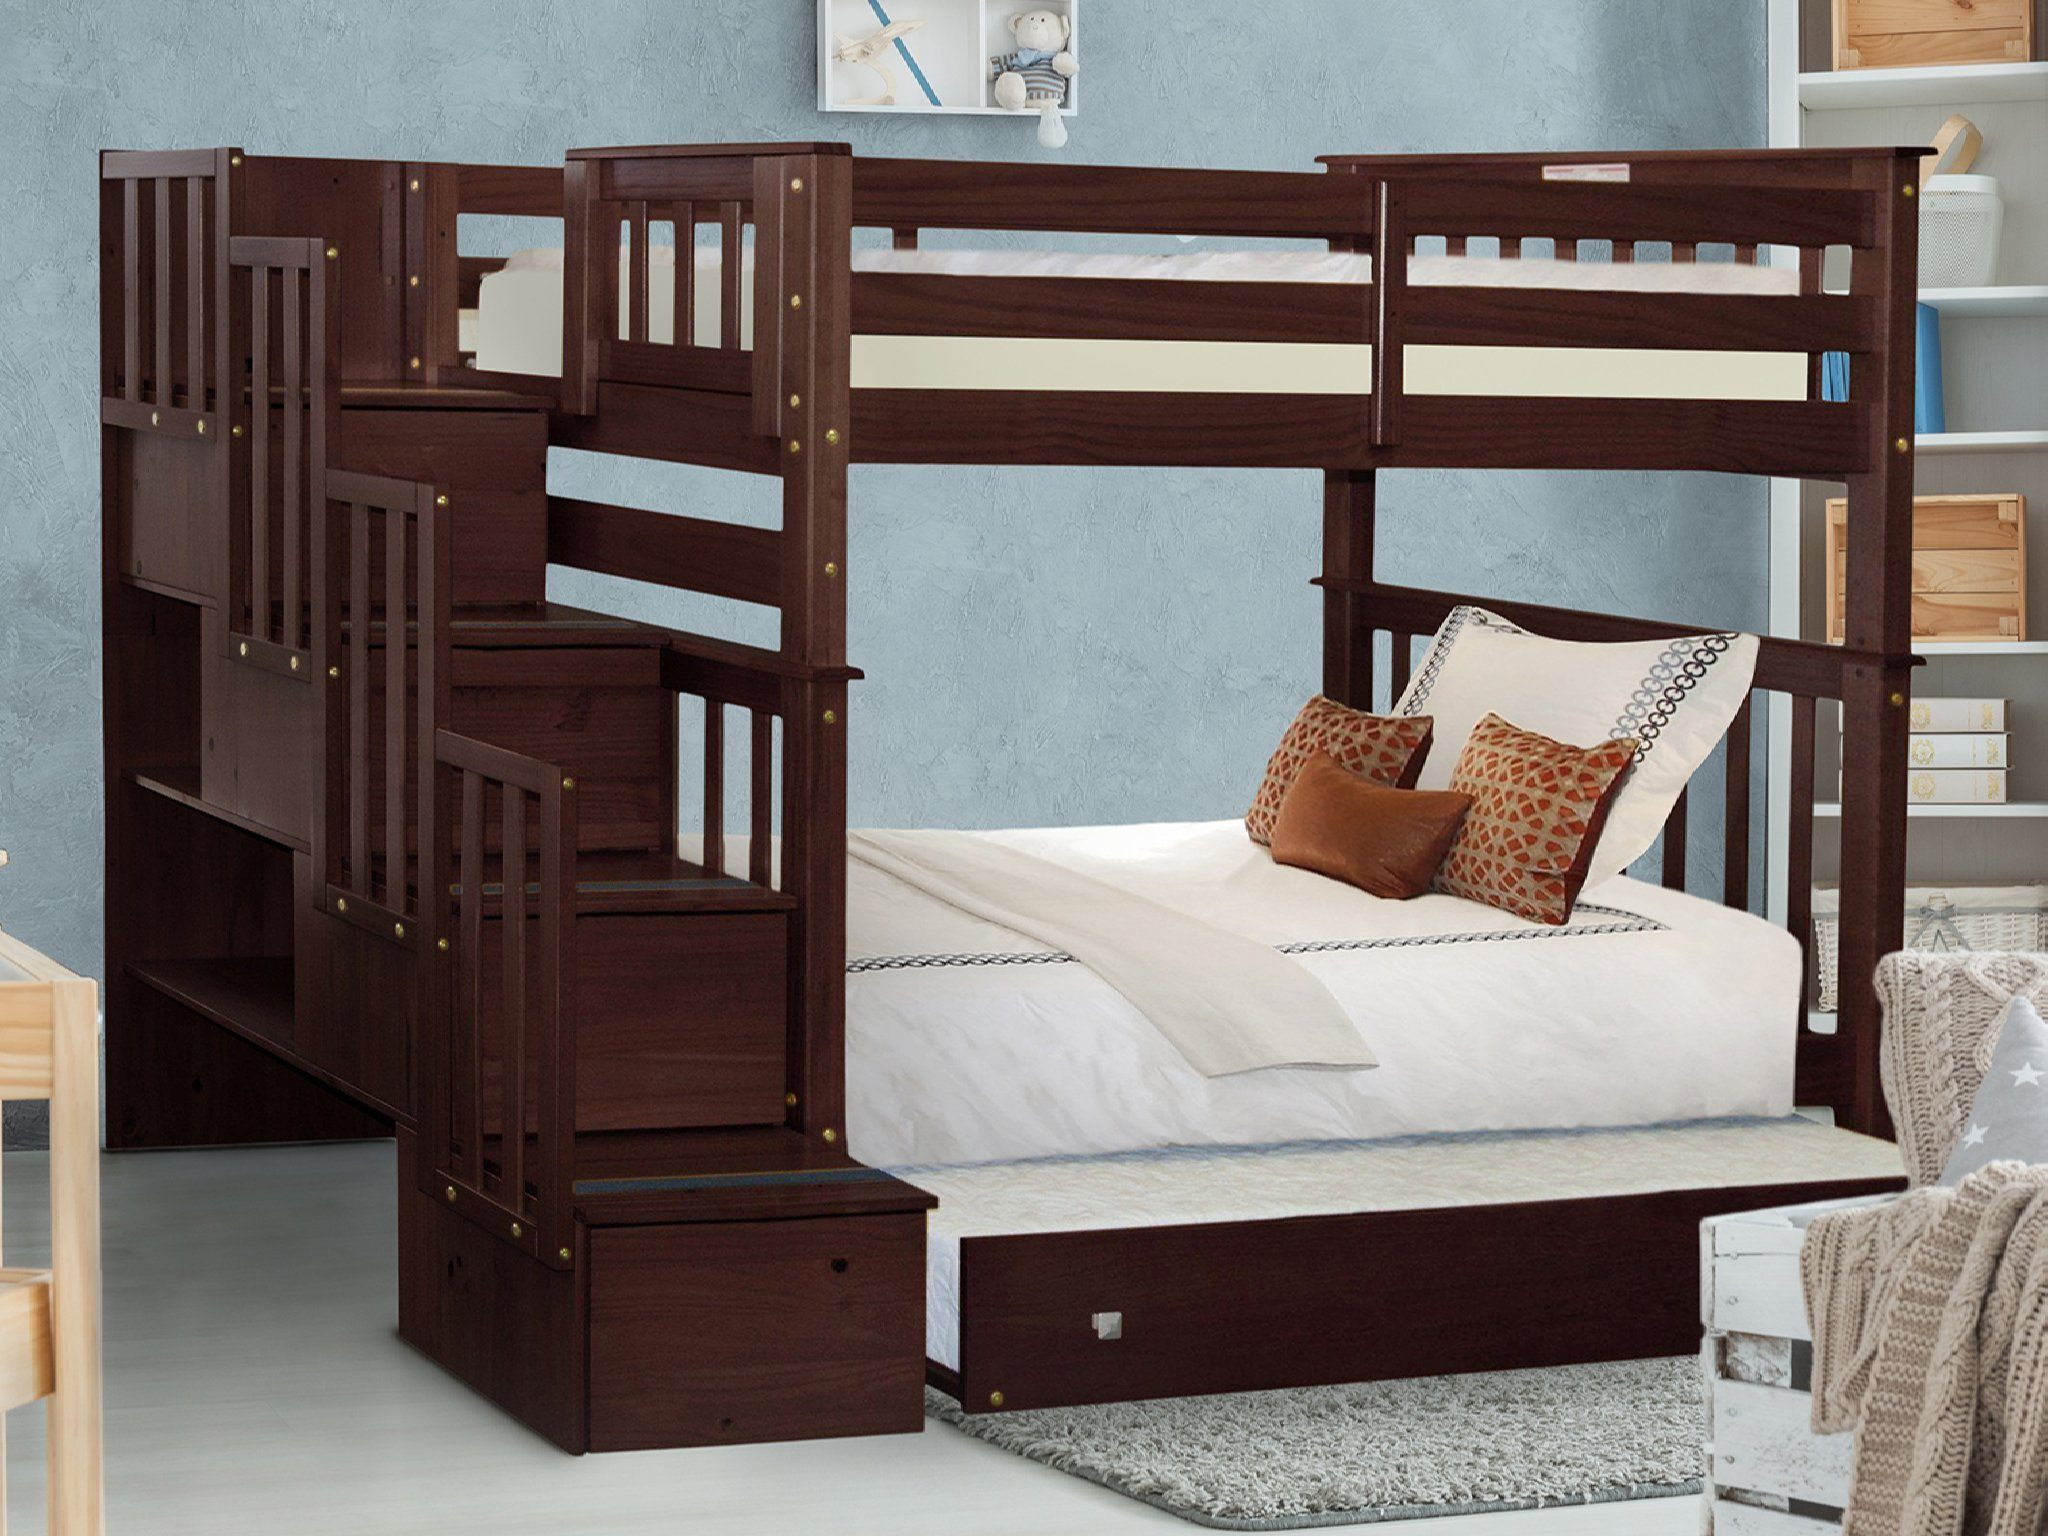 Kids Furniture Cappuccino Bedz King Stairway Bunk Beds Twin Over Full With 4 Drawers In The Steps And A Trundle Home Kitchen